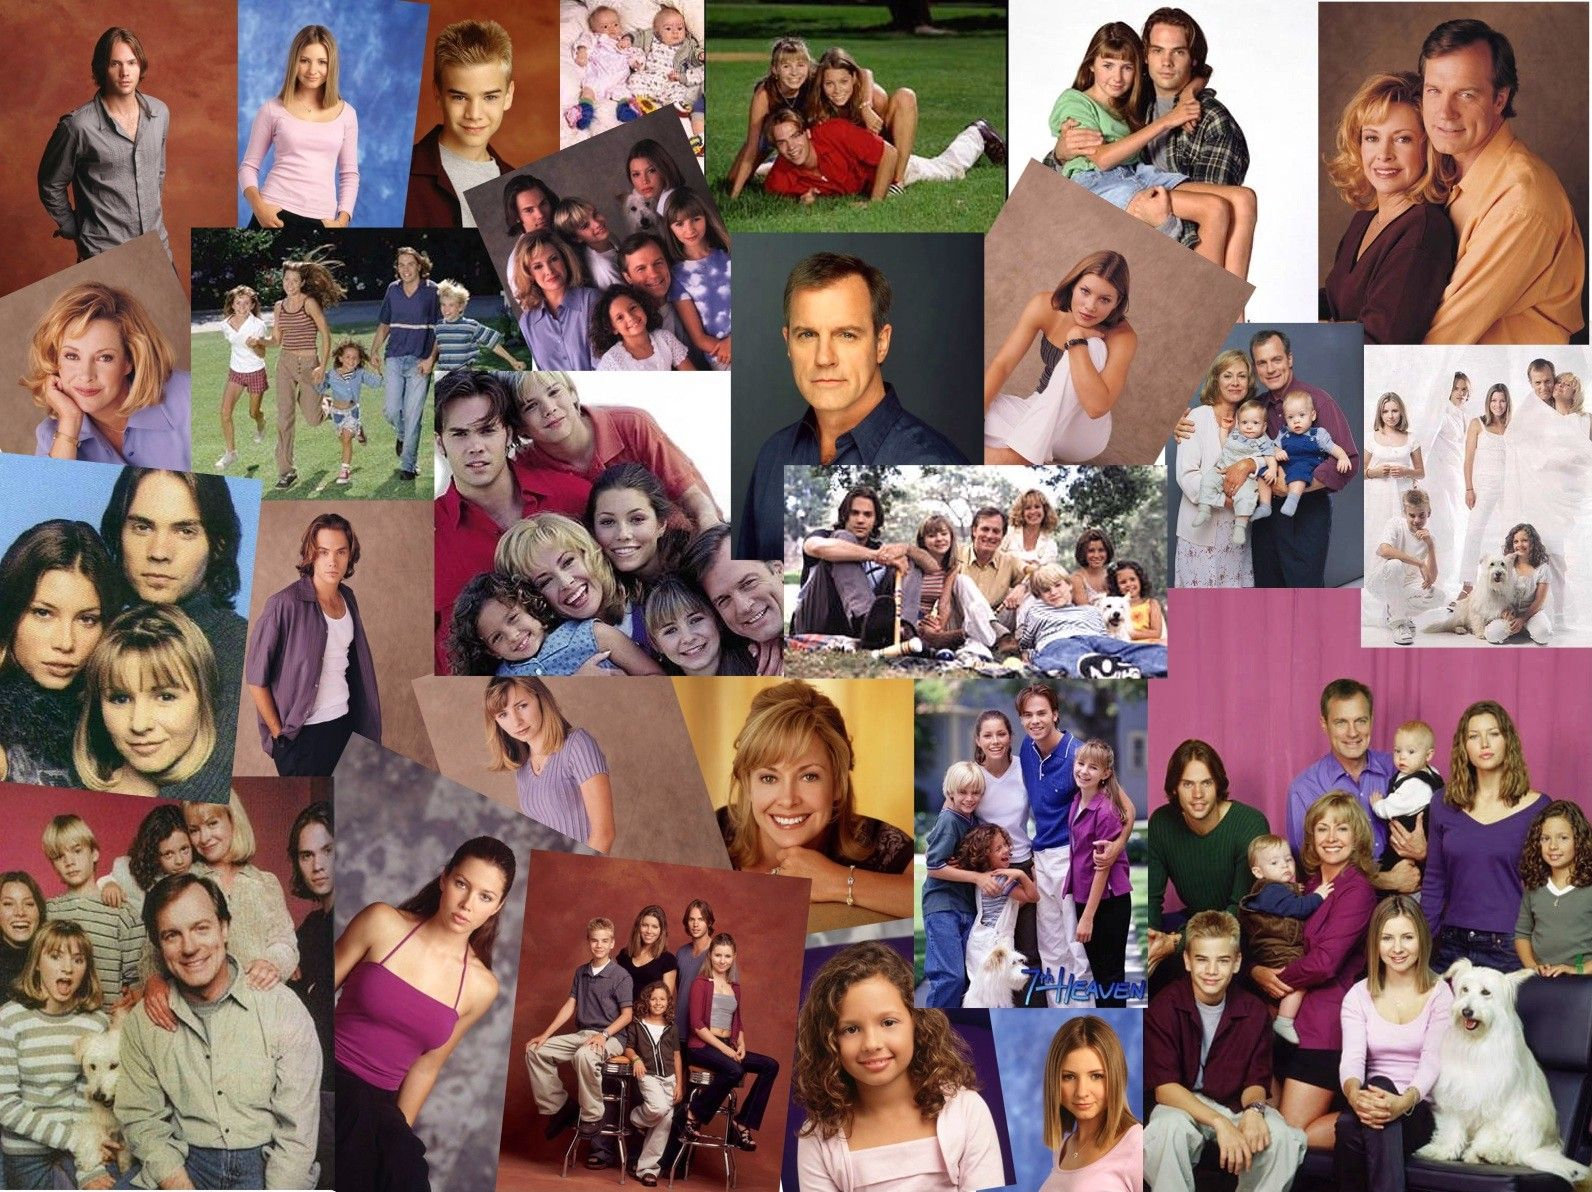 7th heaven Created by brenda hampton with stephen collins, catherine hicks, jessica biel, beverley mitchell eric camden, a minister, and his wife annie deal with the drama of having seven children, ranging from toddlers to adults with families of their own.